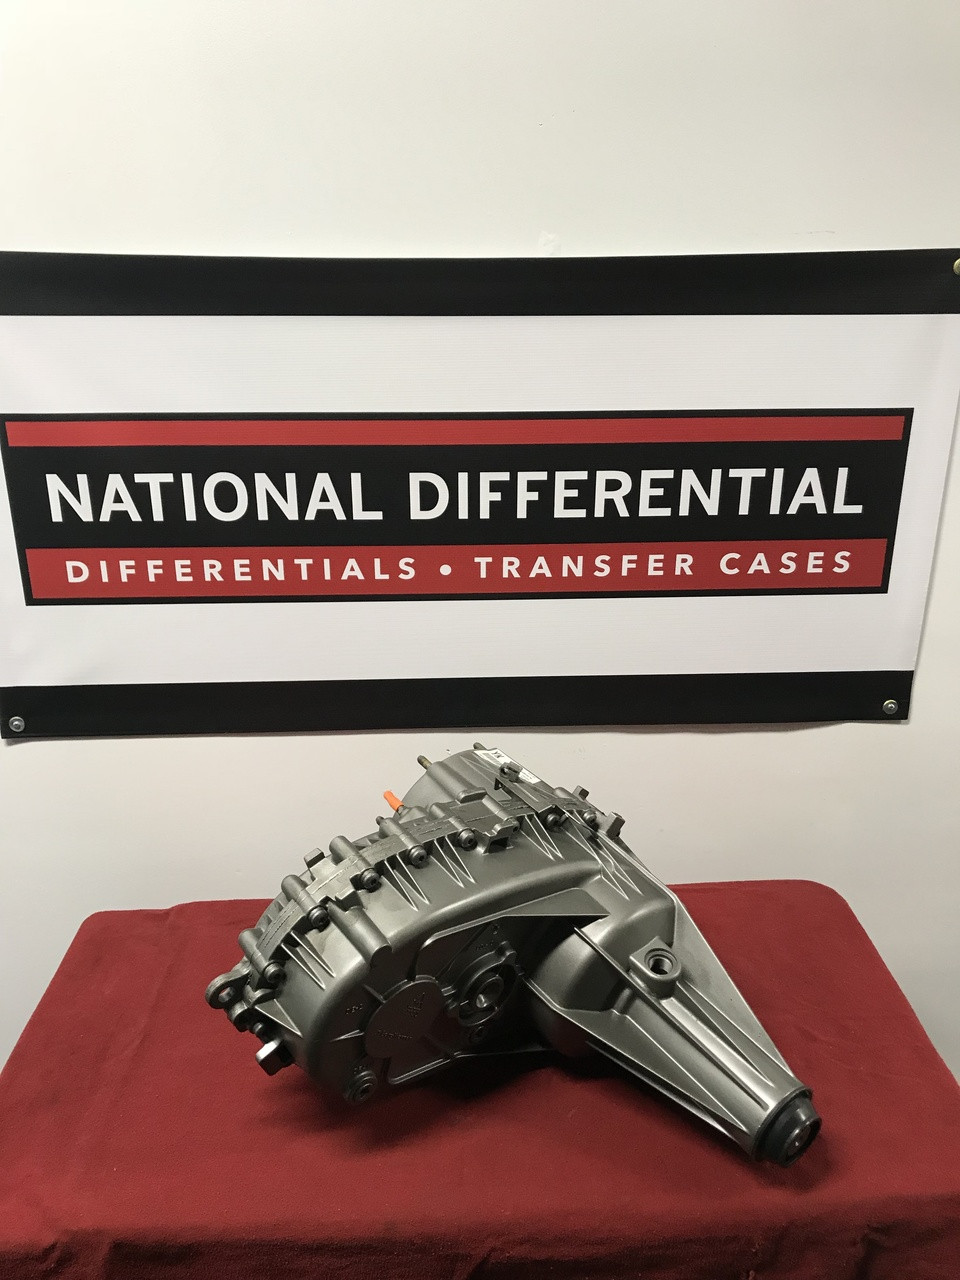 Borg Warner 4481 Transfer Case for All-Wheel Drive (AWD) GMC Denali SUV for years 2002-2007.